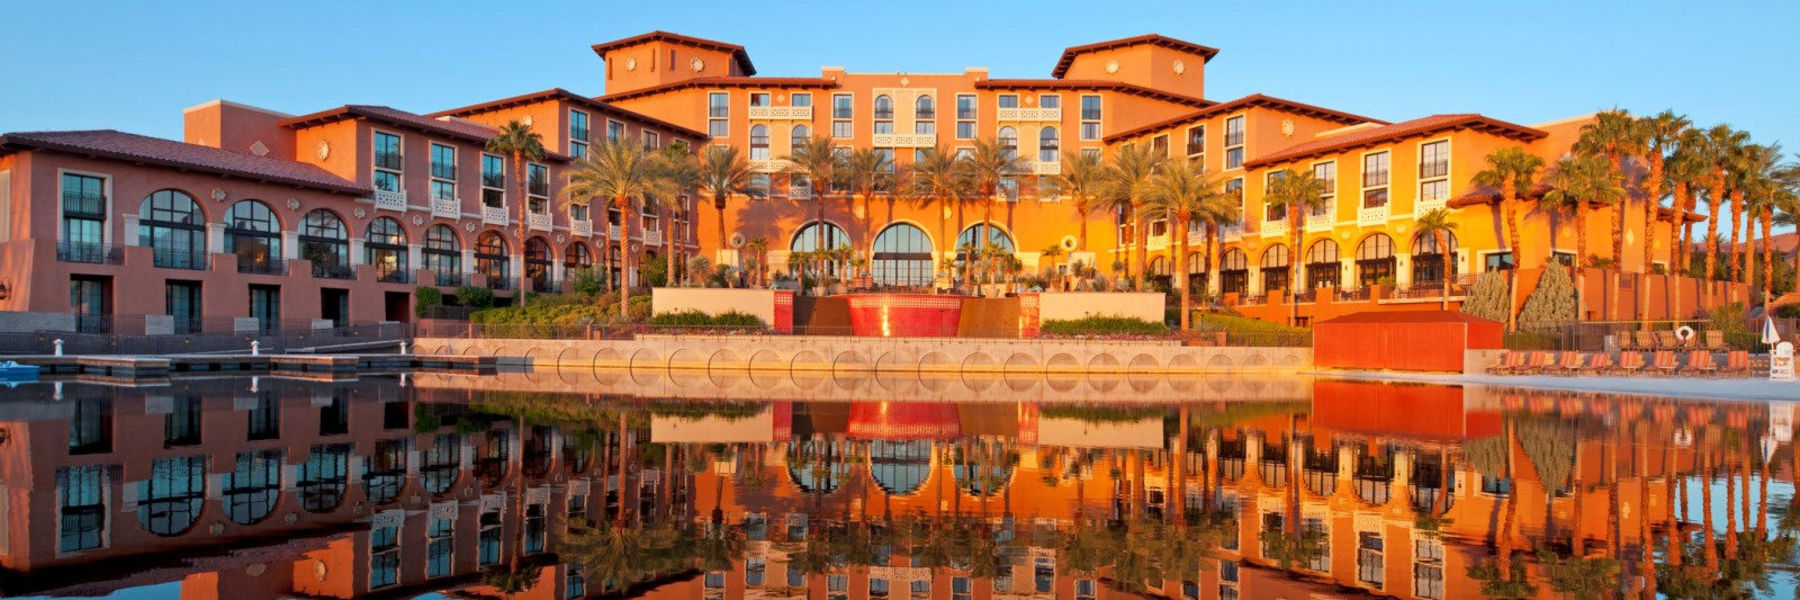 Golf Vacation Package - Lake Las Vegas - Reflection Bay, South Shore, Breakfast and more for $249!